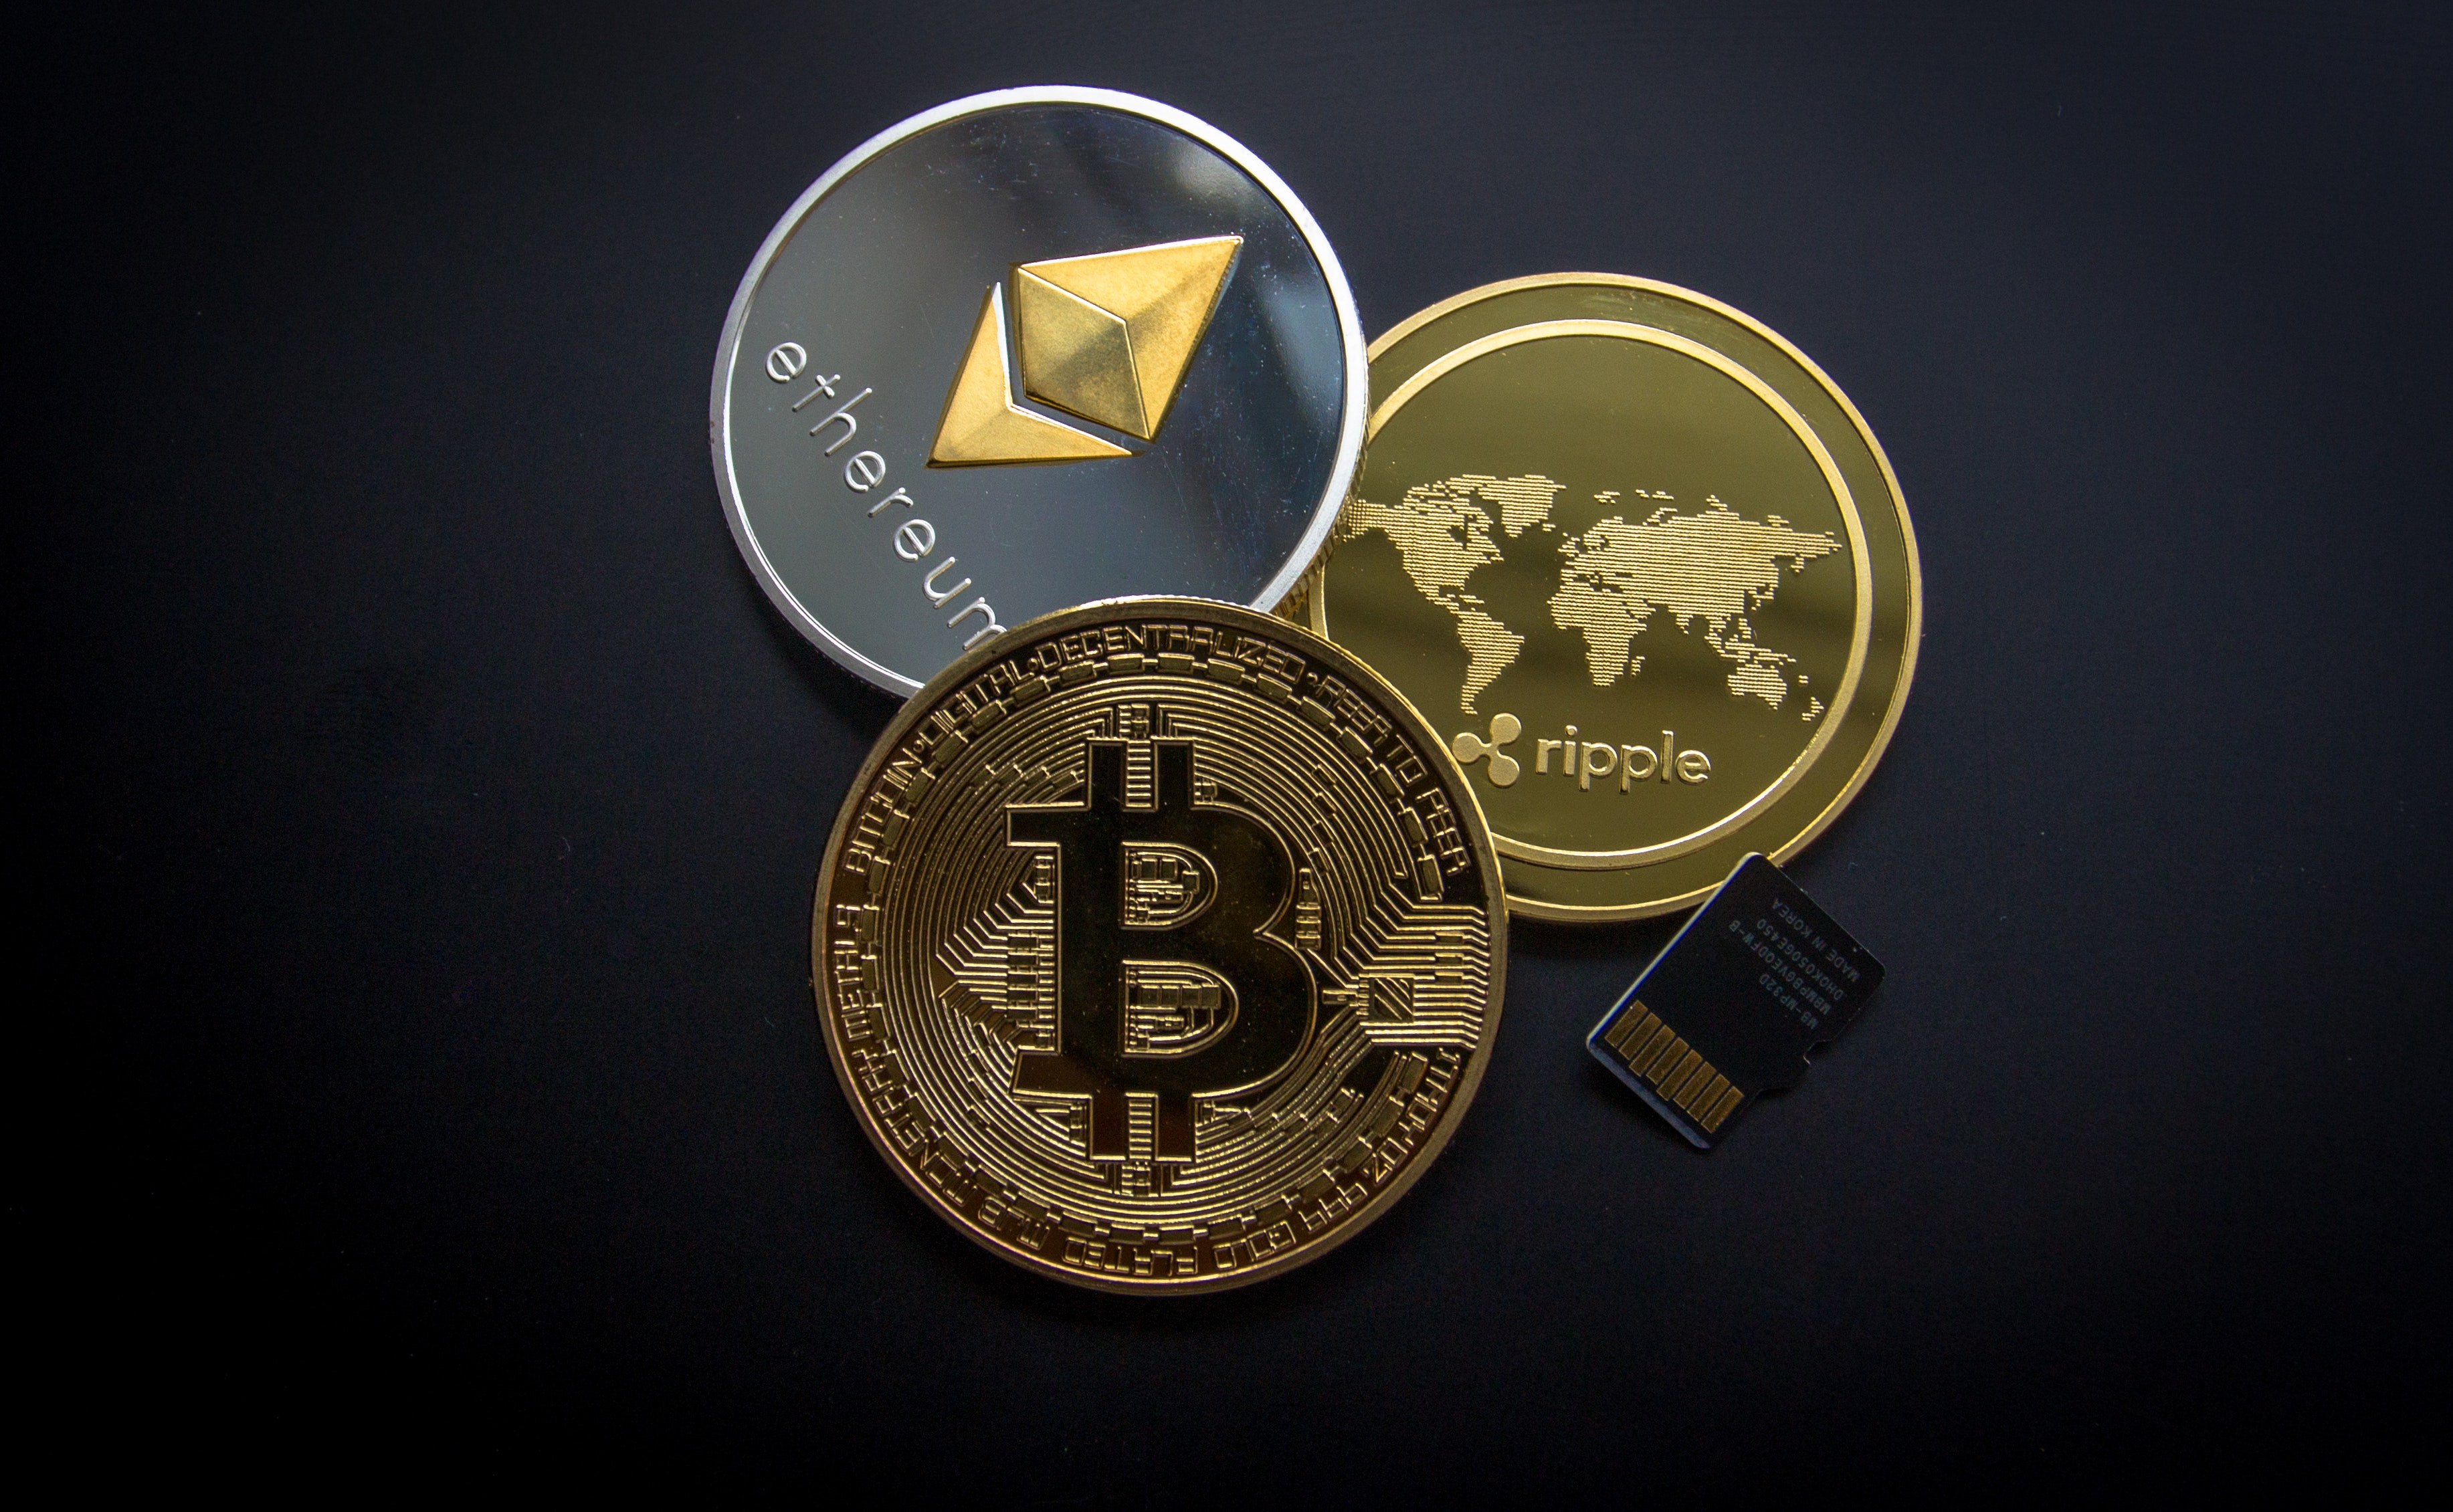 Ripple, Etehereum and Bitcoin and Micro Sdhc Card, Bank, Bitcoin, Business, Change, HQ Photo